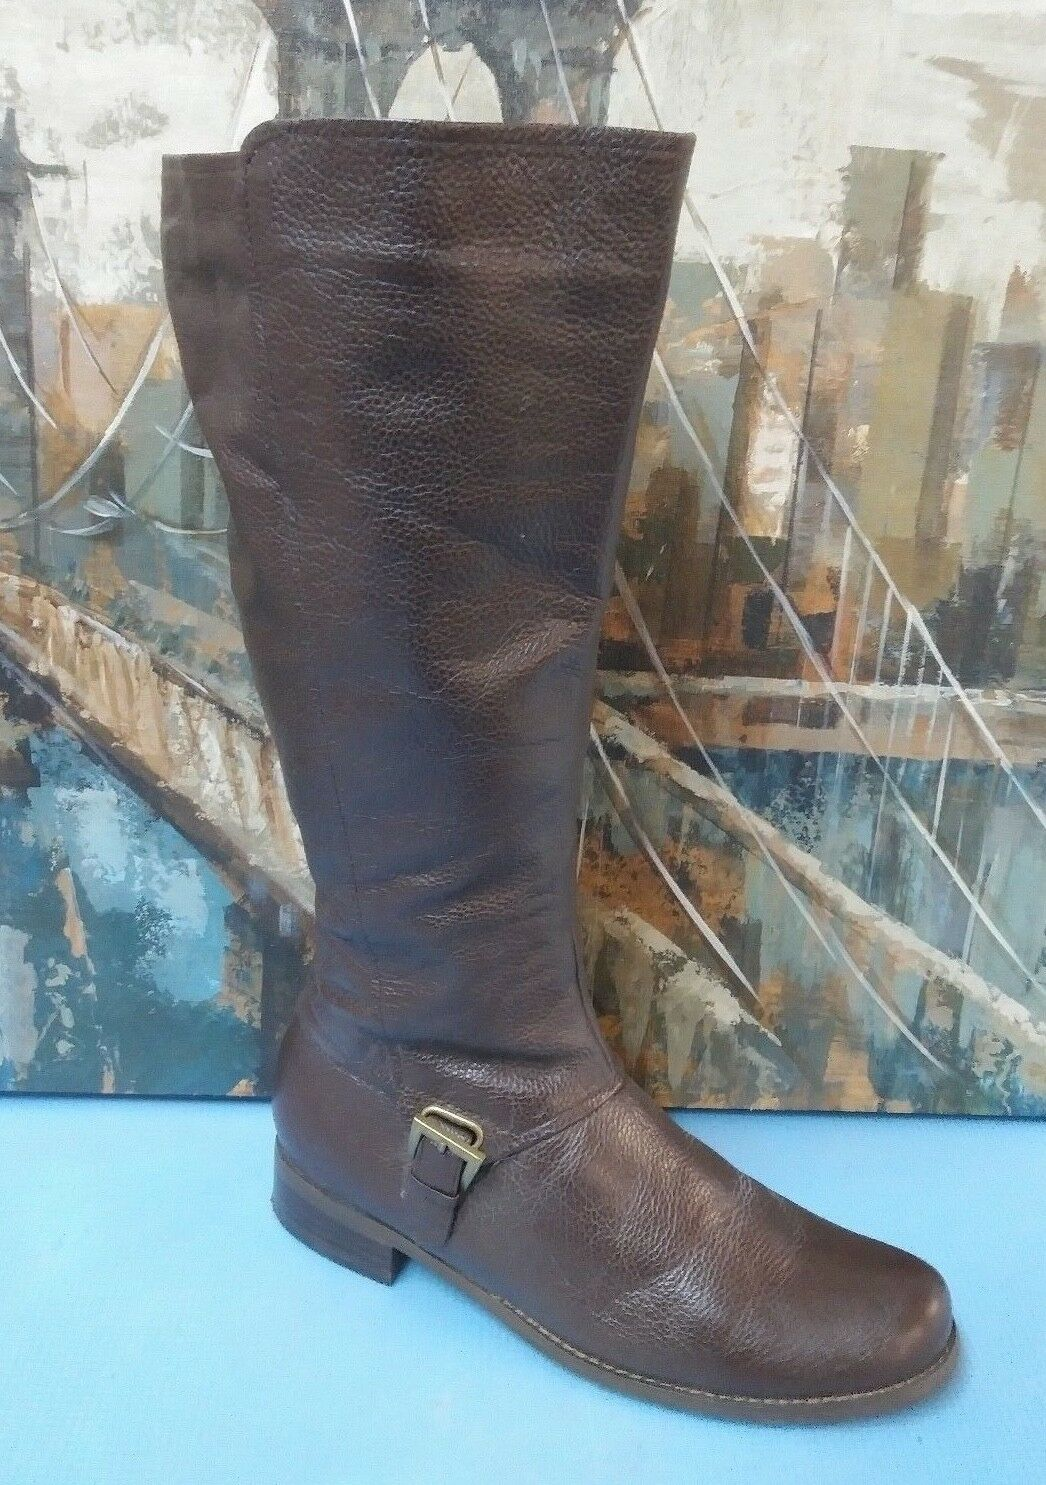 FITZWELL women boot riding tall brown leather Sz. 8.5 M